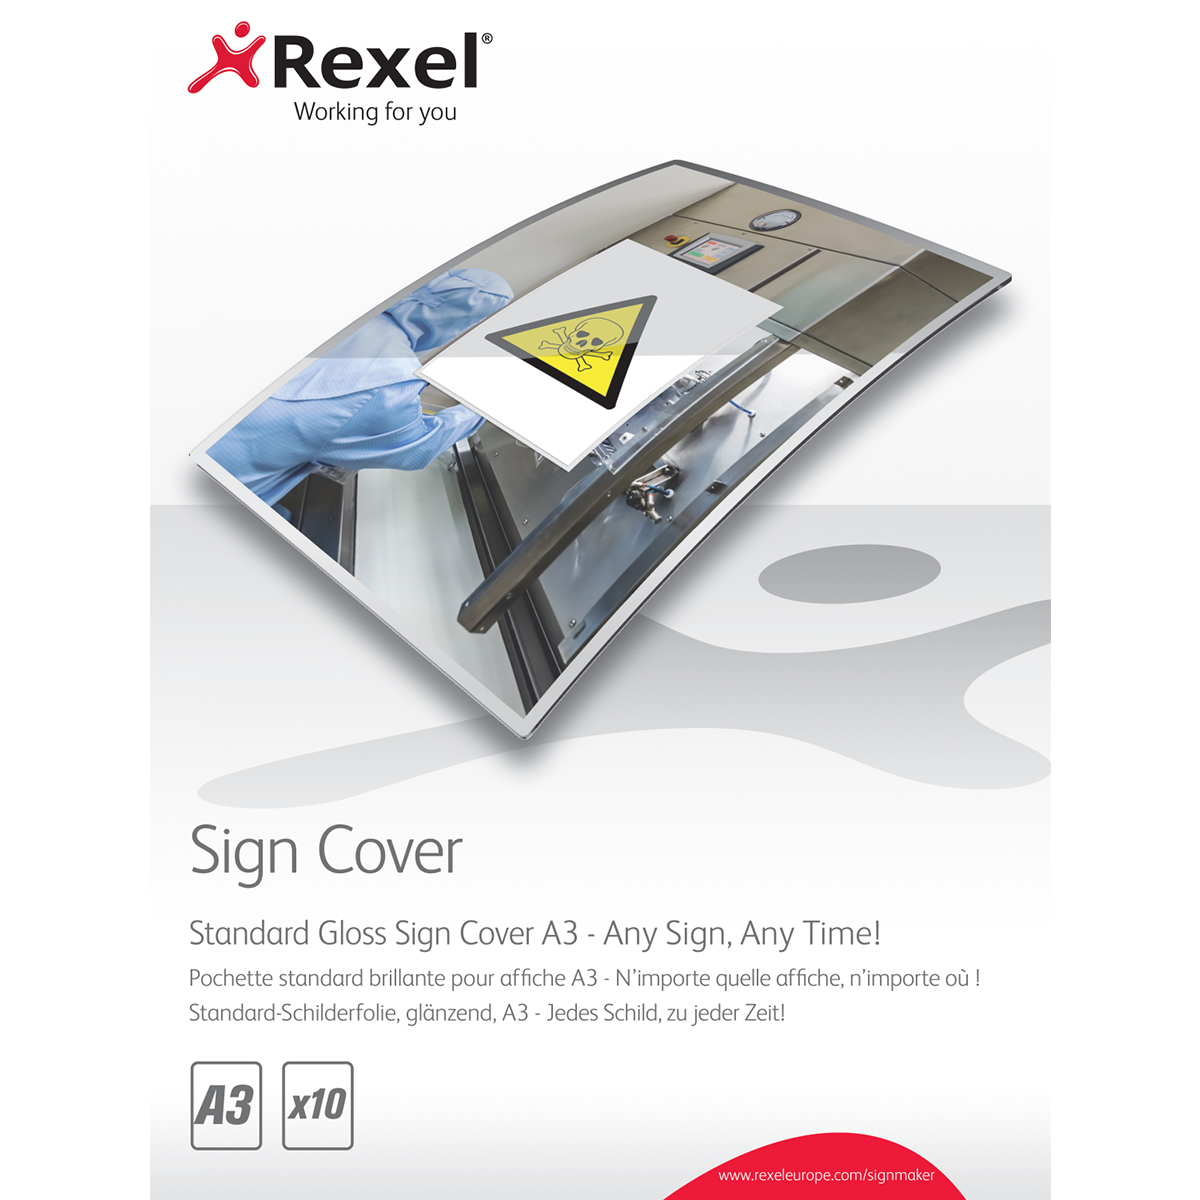 Rexel 2104254 Signmaker Standard Gloss Sign Covers A3 Pack of 10